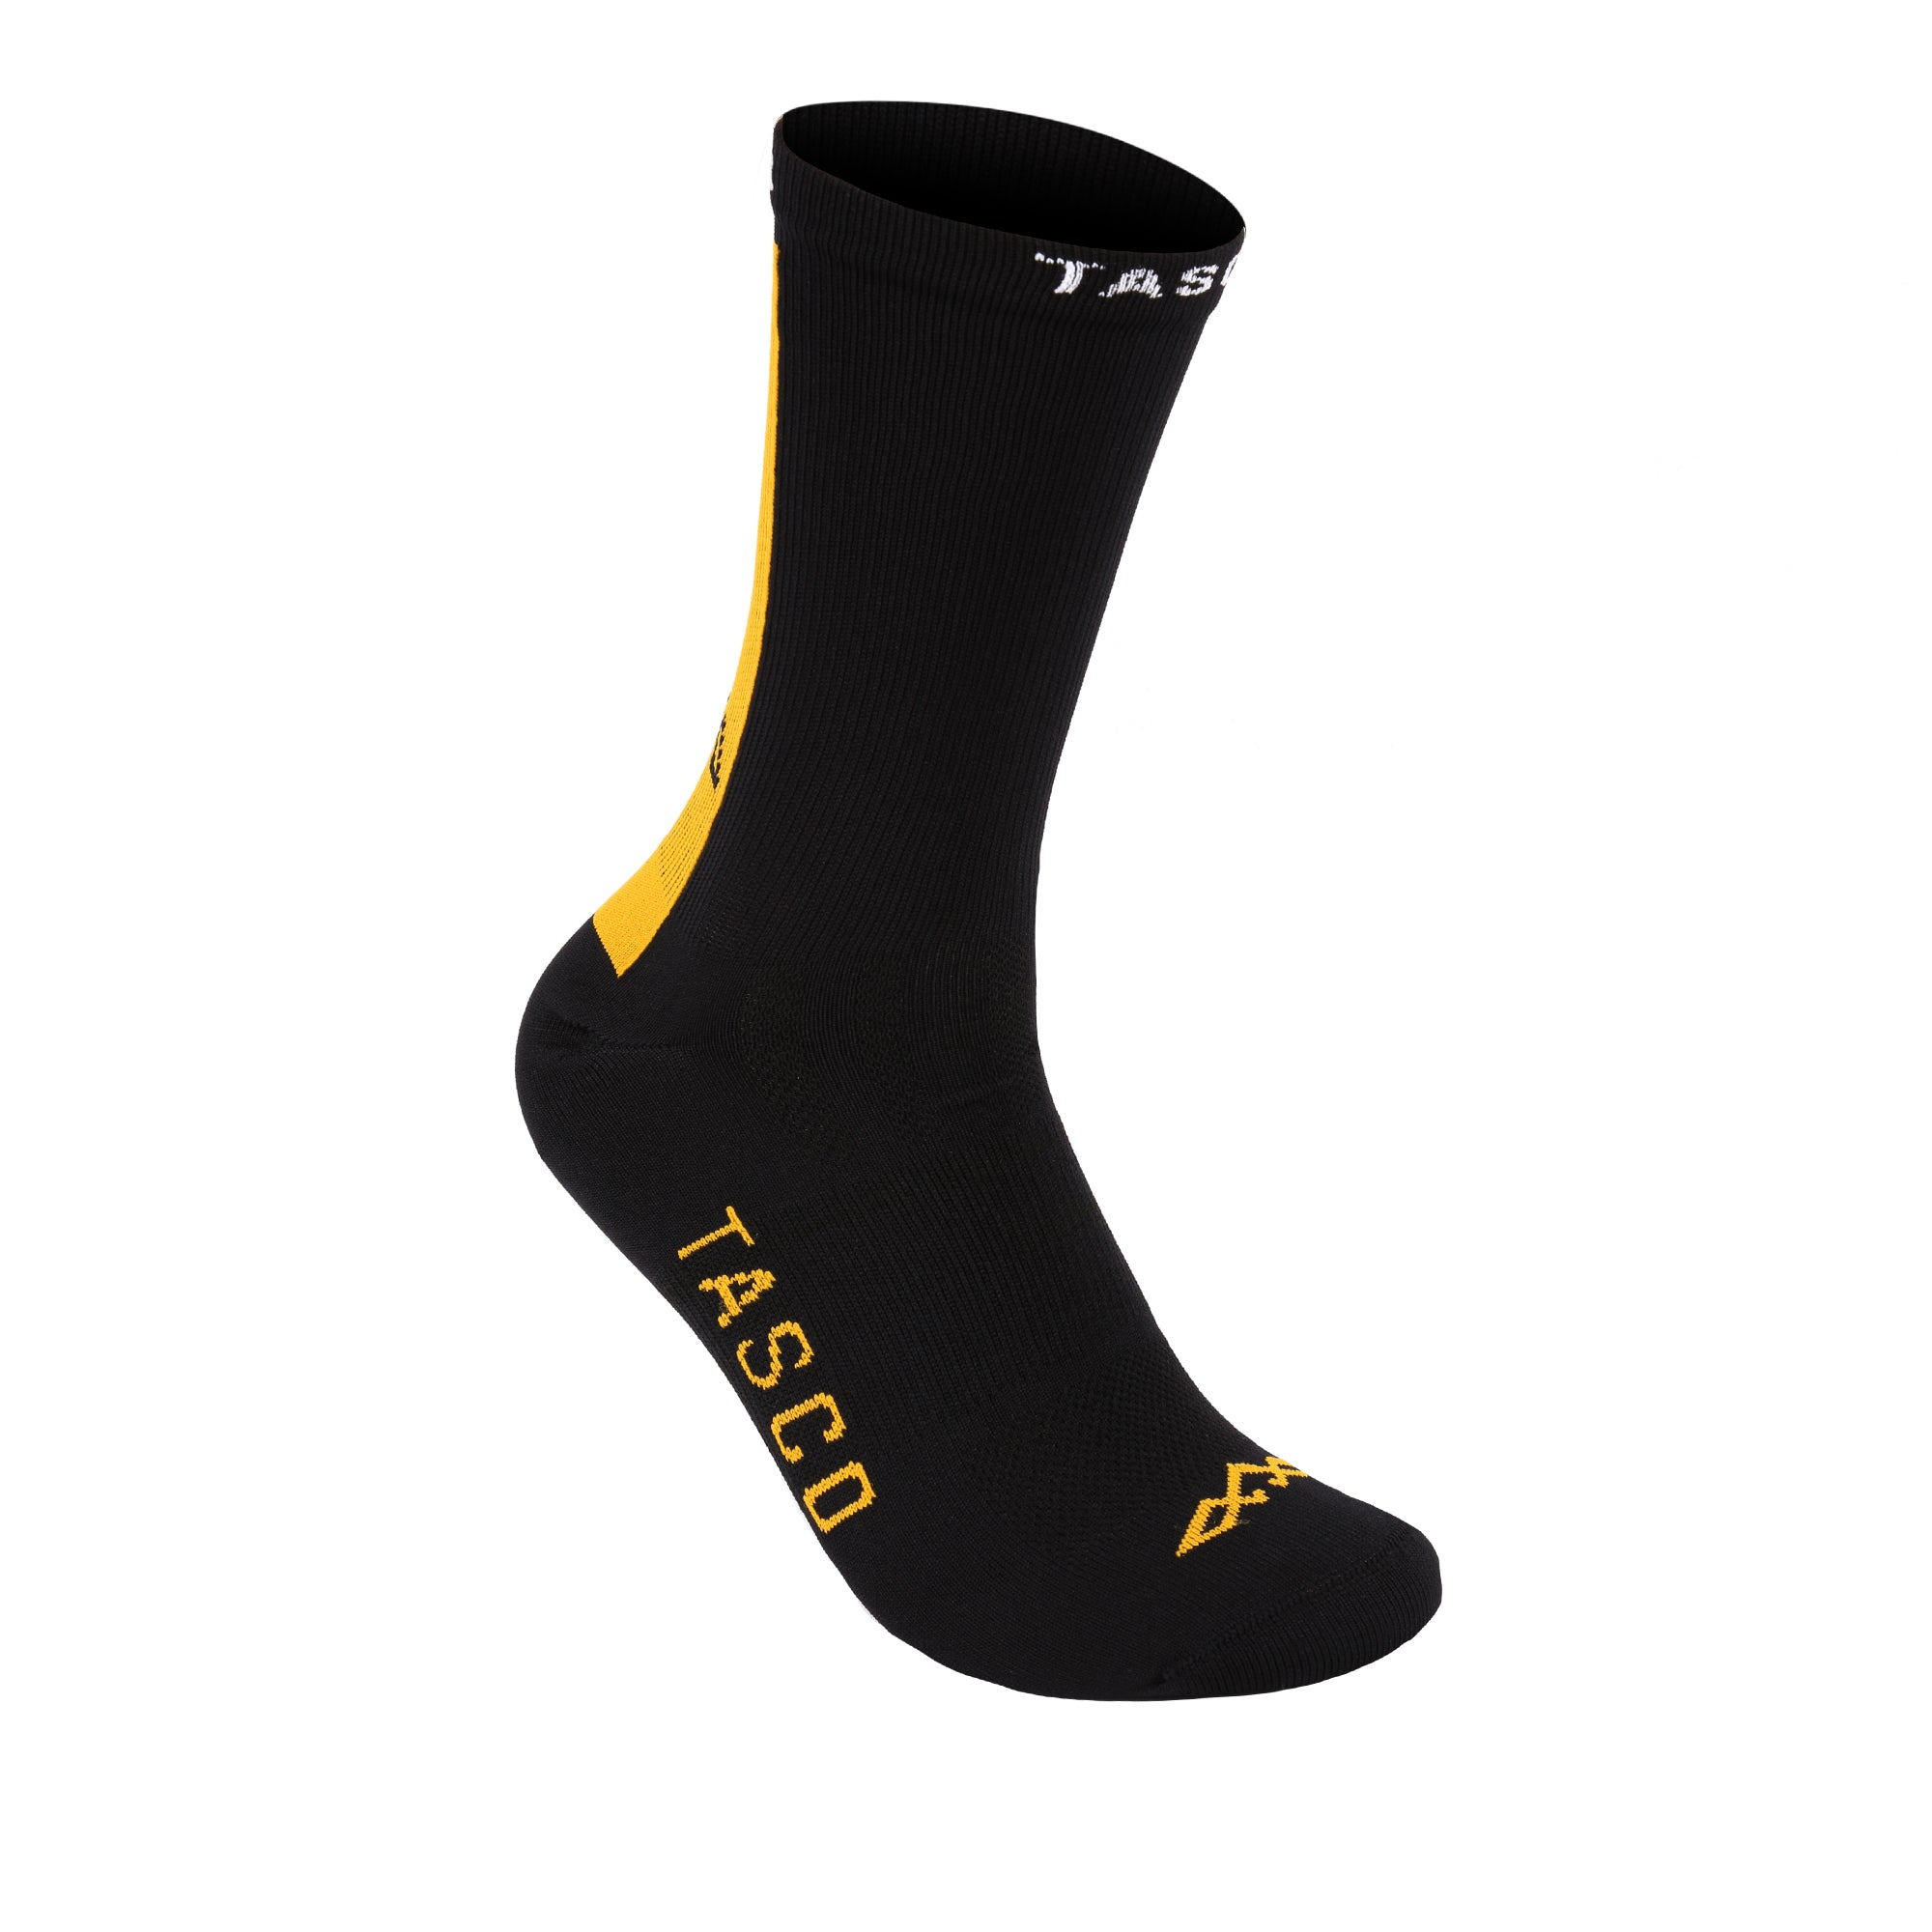 Median Double Digits MTB Socks